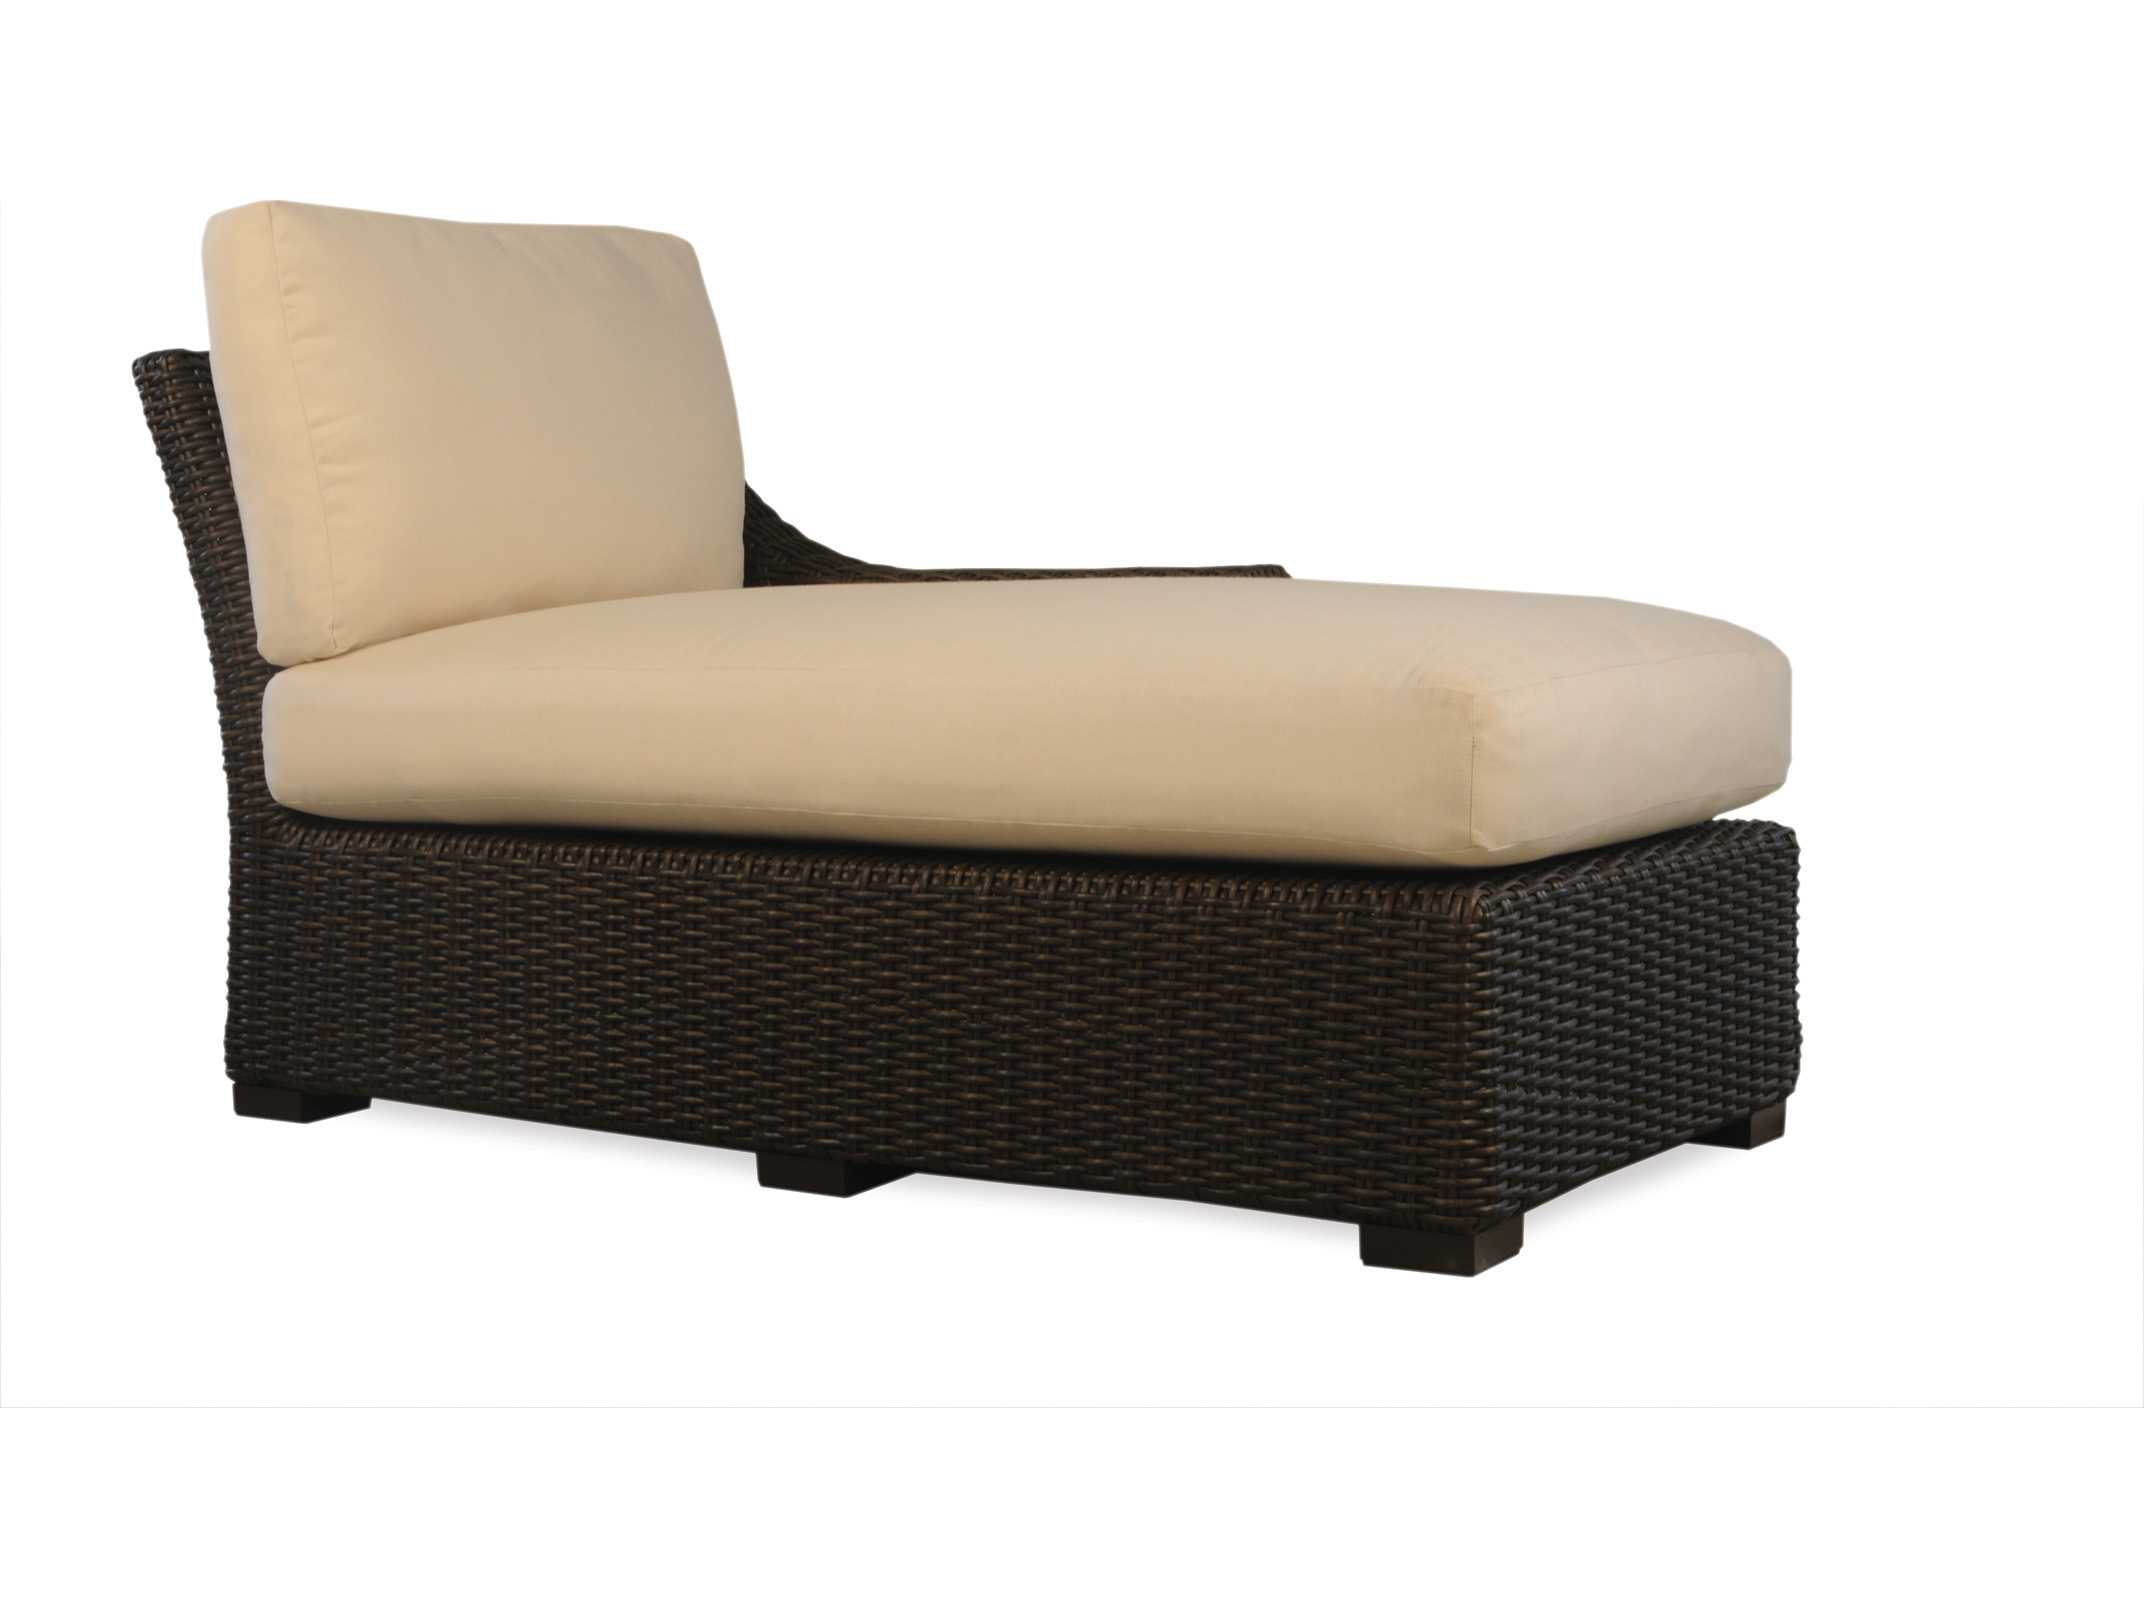 Lloyd flanders mesa wicker left arm chaise lounge 298026 for Arm chaise lounge